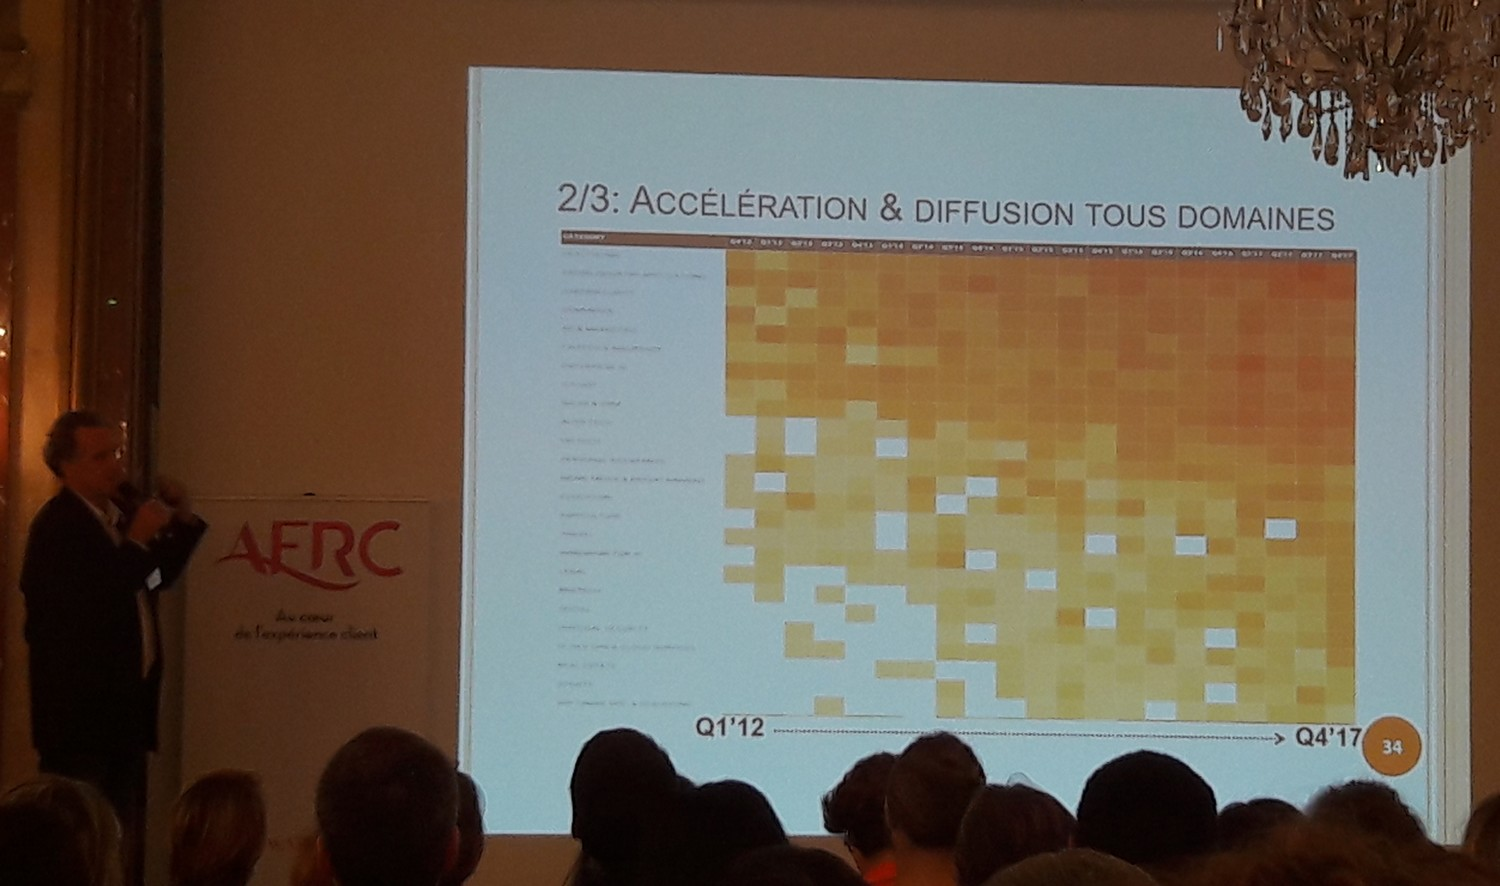 Intelligence Artificielle et Relation Client, quels seront les impacts ? La vision de l'AFRC 18